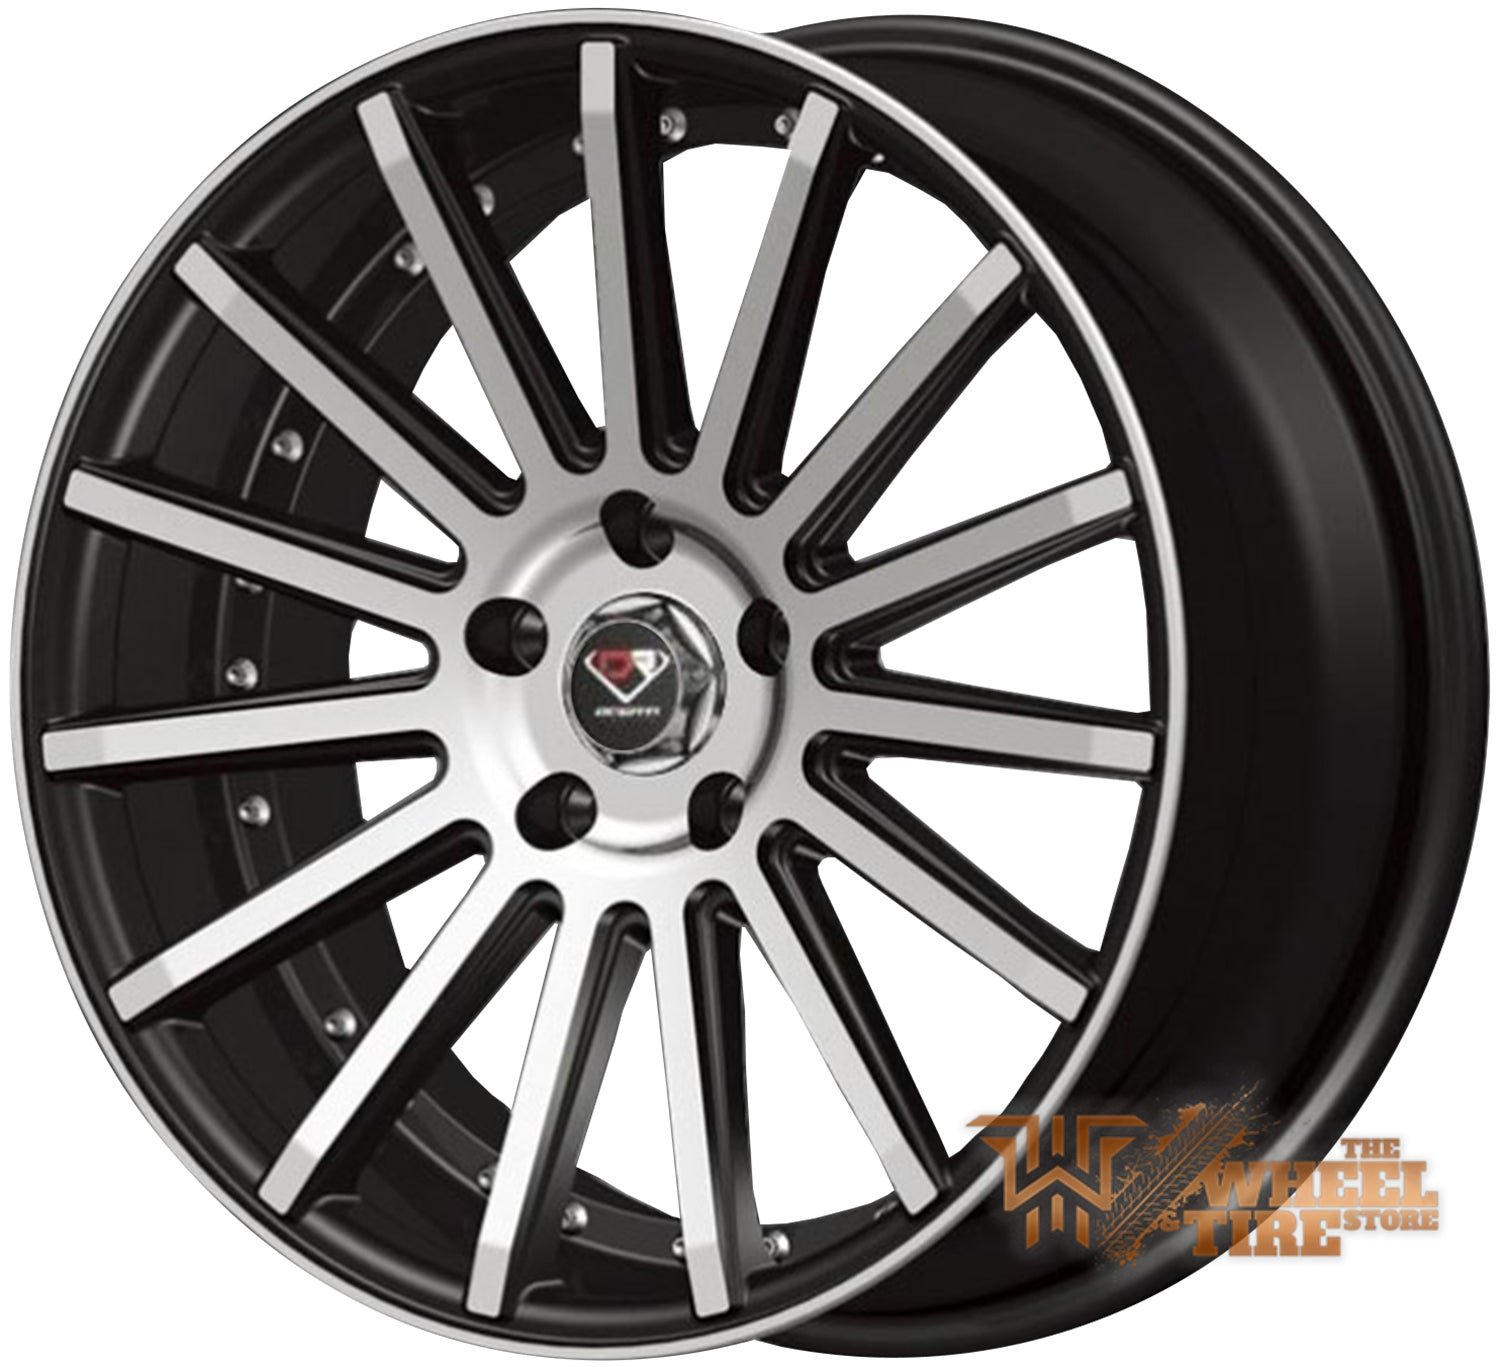 DCENTI Racing DCTL008 Wheel in Black Machined (Set of 4)